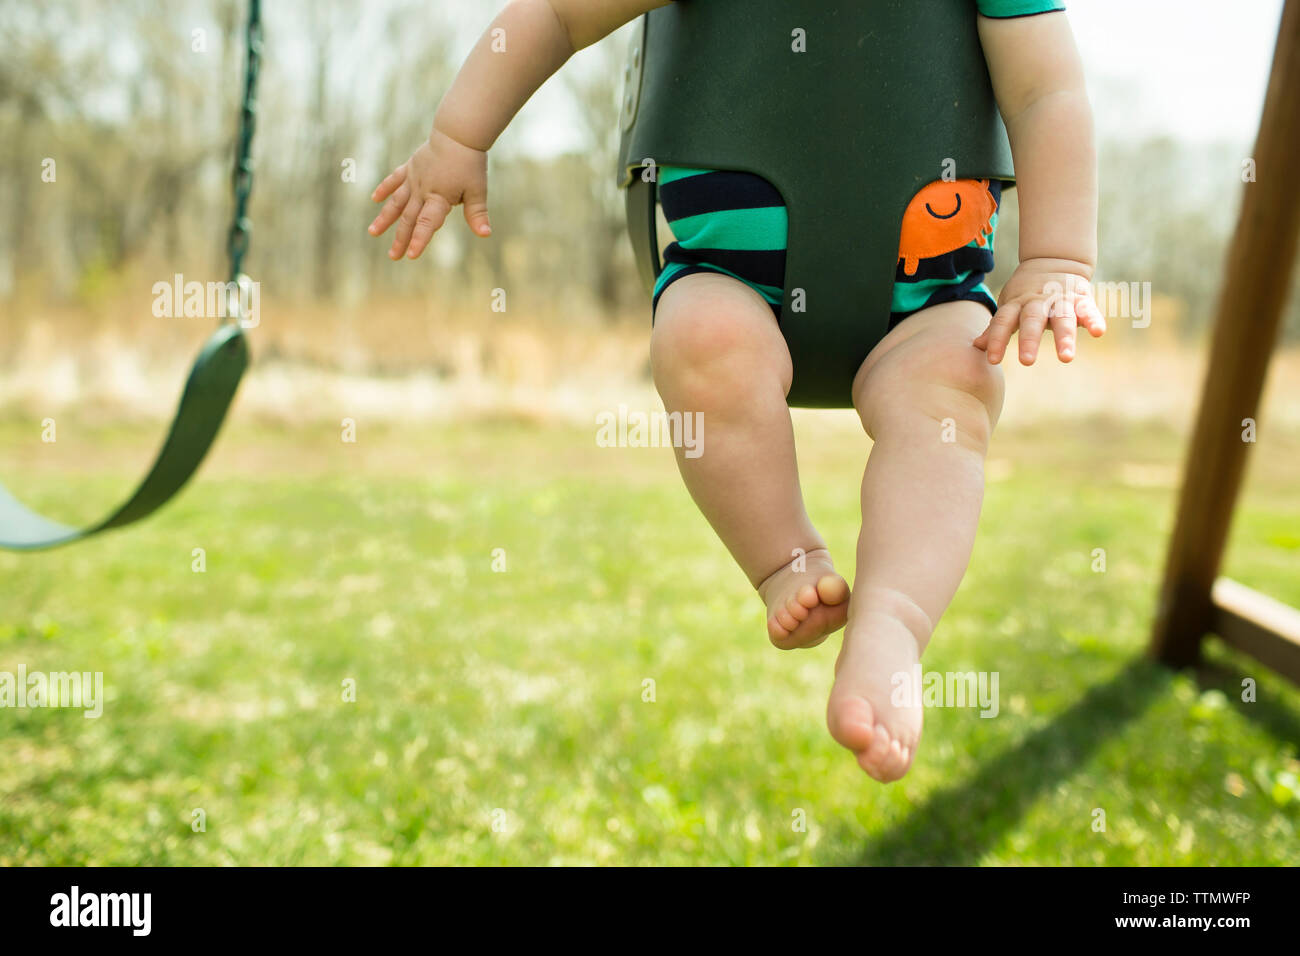 Low section of boy swinging in park - Stock Image